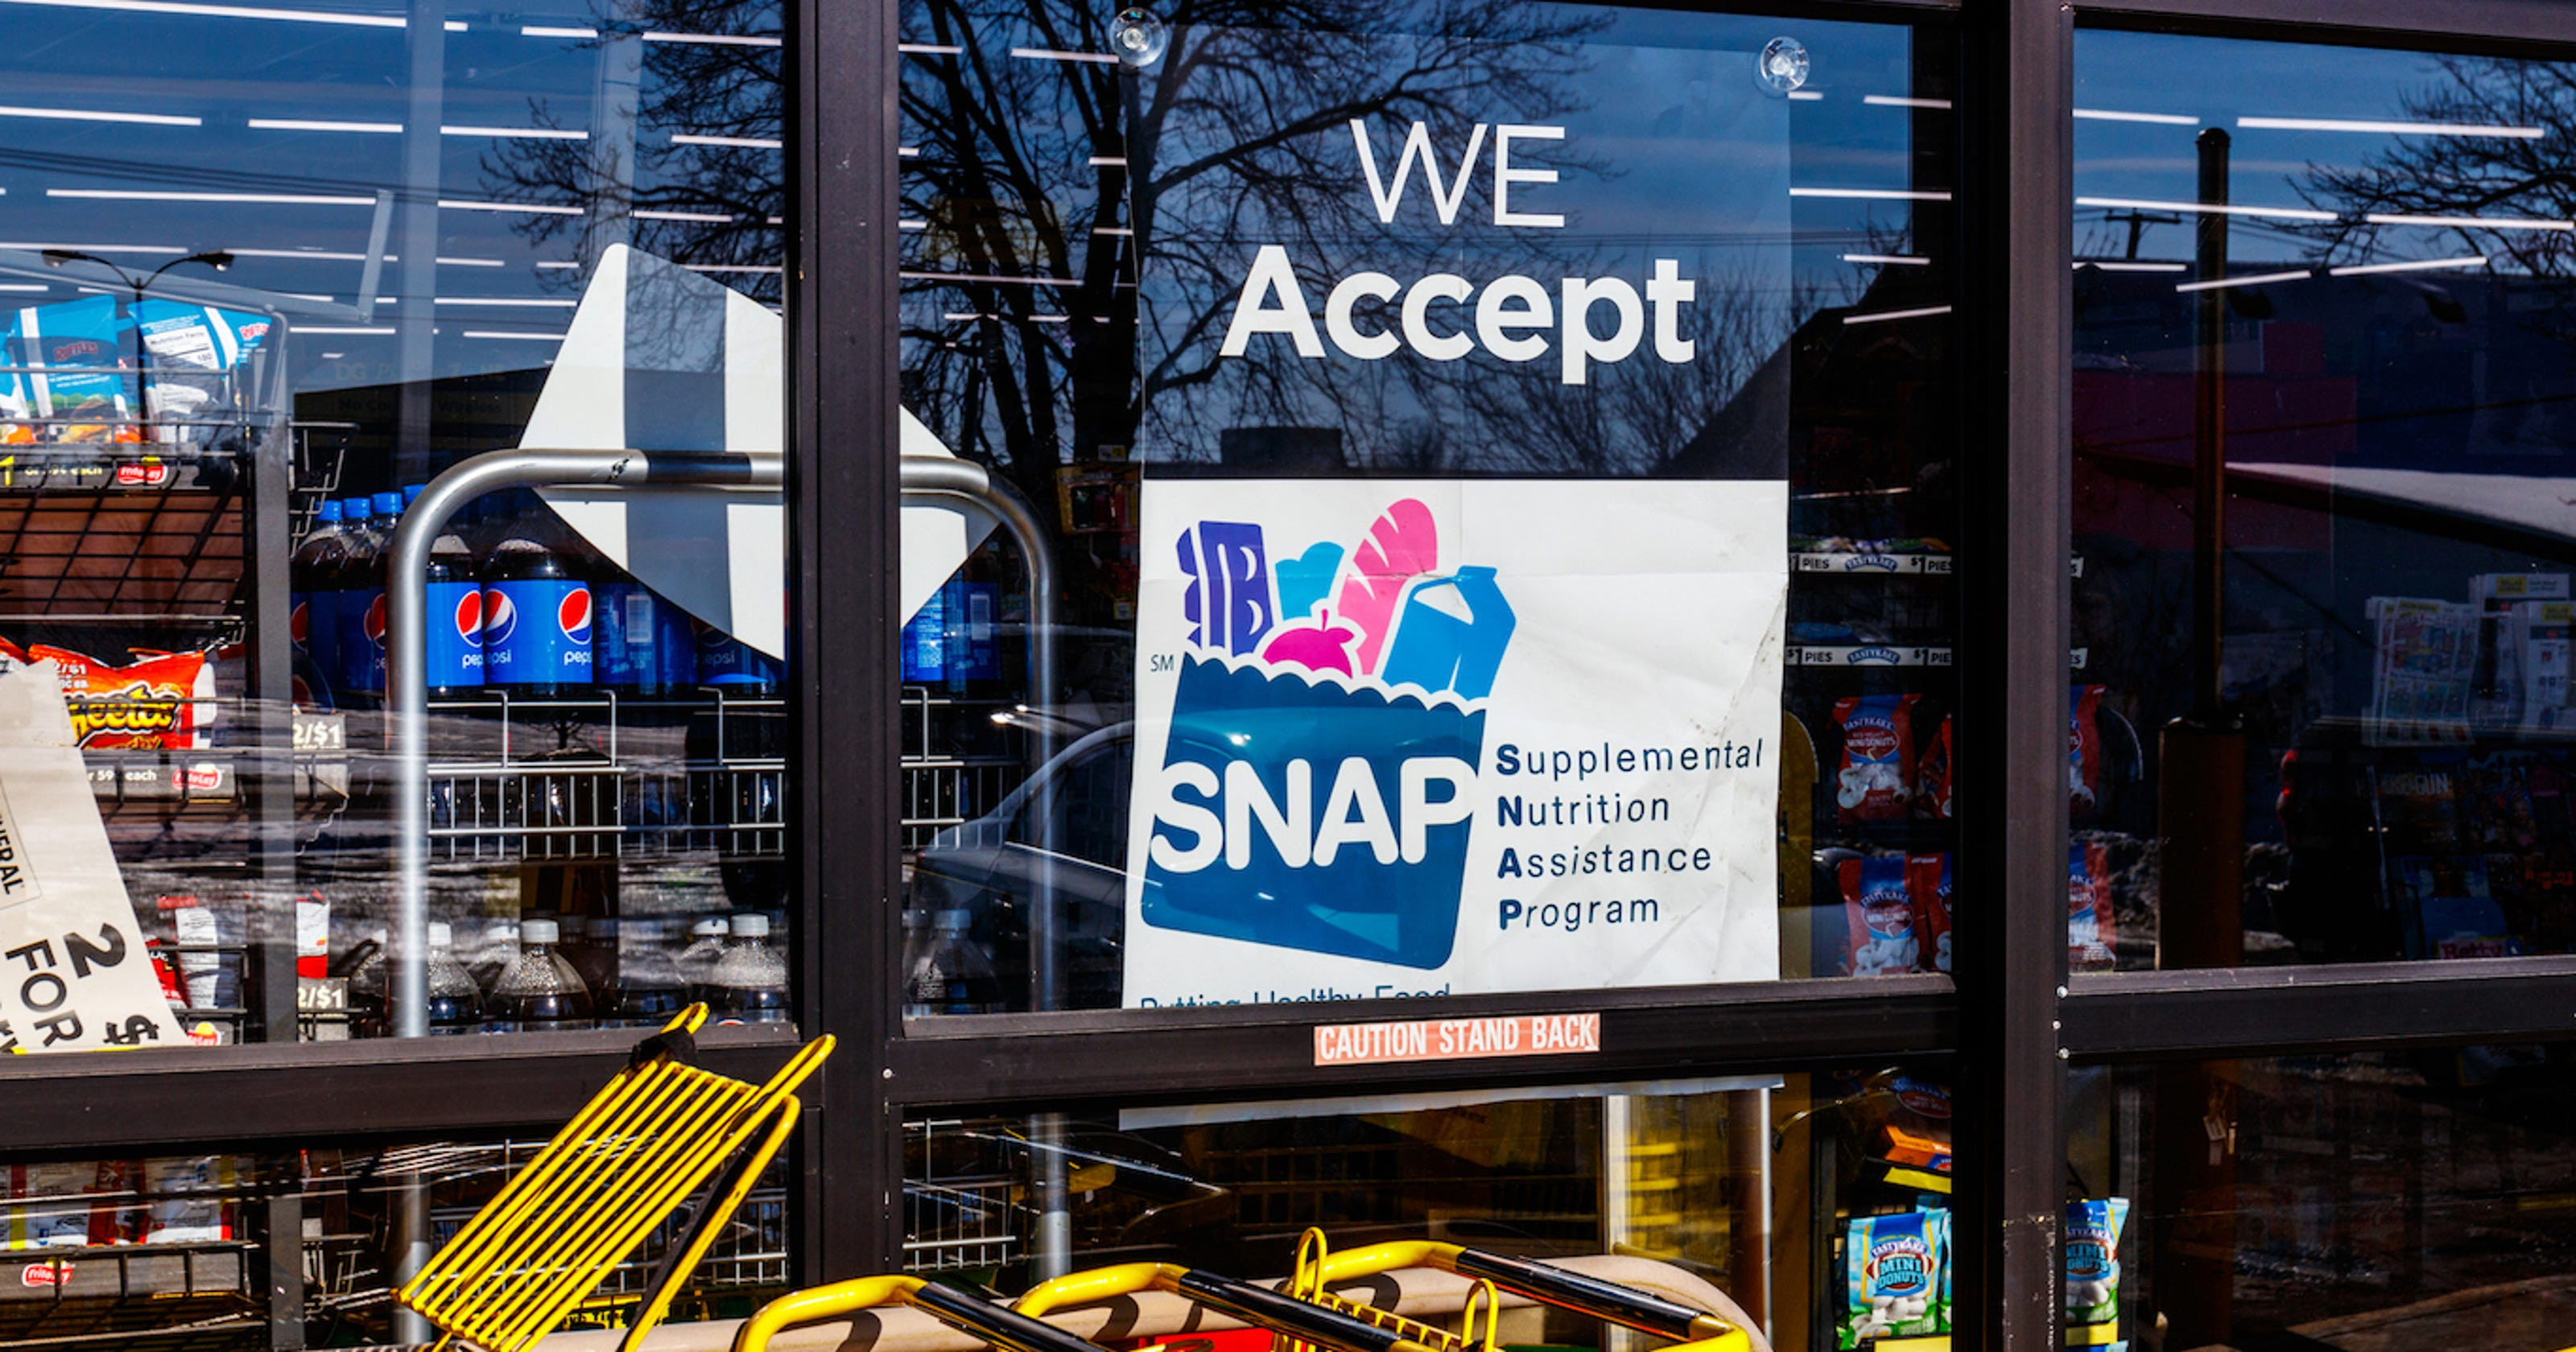 SNAP Benefits Cities With The Most People On Food Stamps